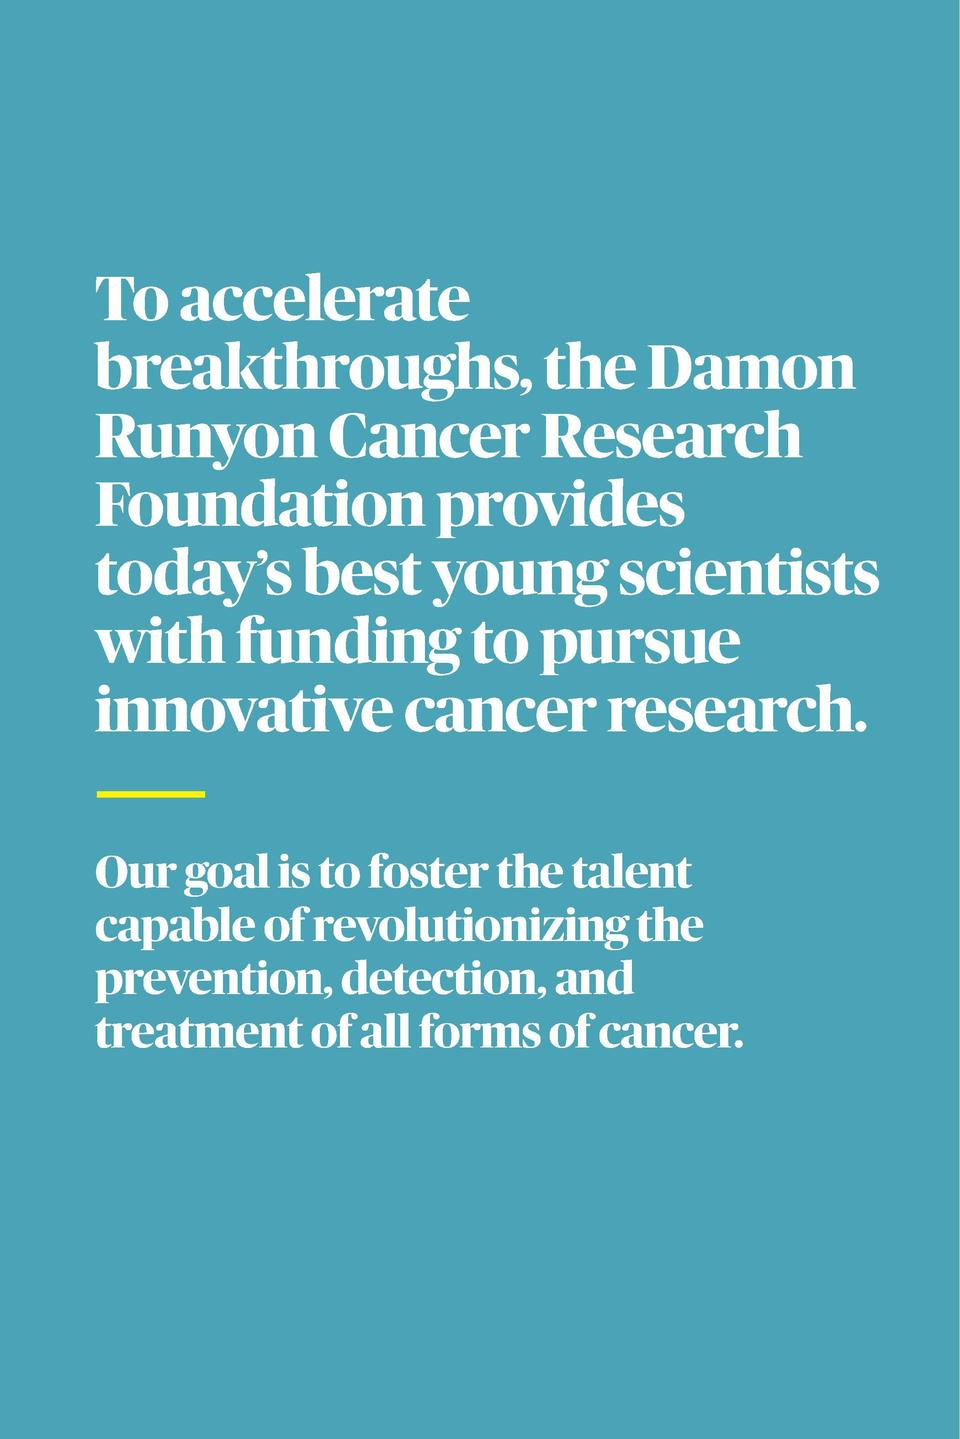 2017 ANNUAL REPO RT  To accelerate breakthroughs, the Damon Runyon Cancer Research Foundation provides today   s best youn...